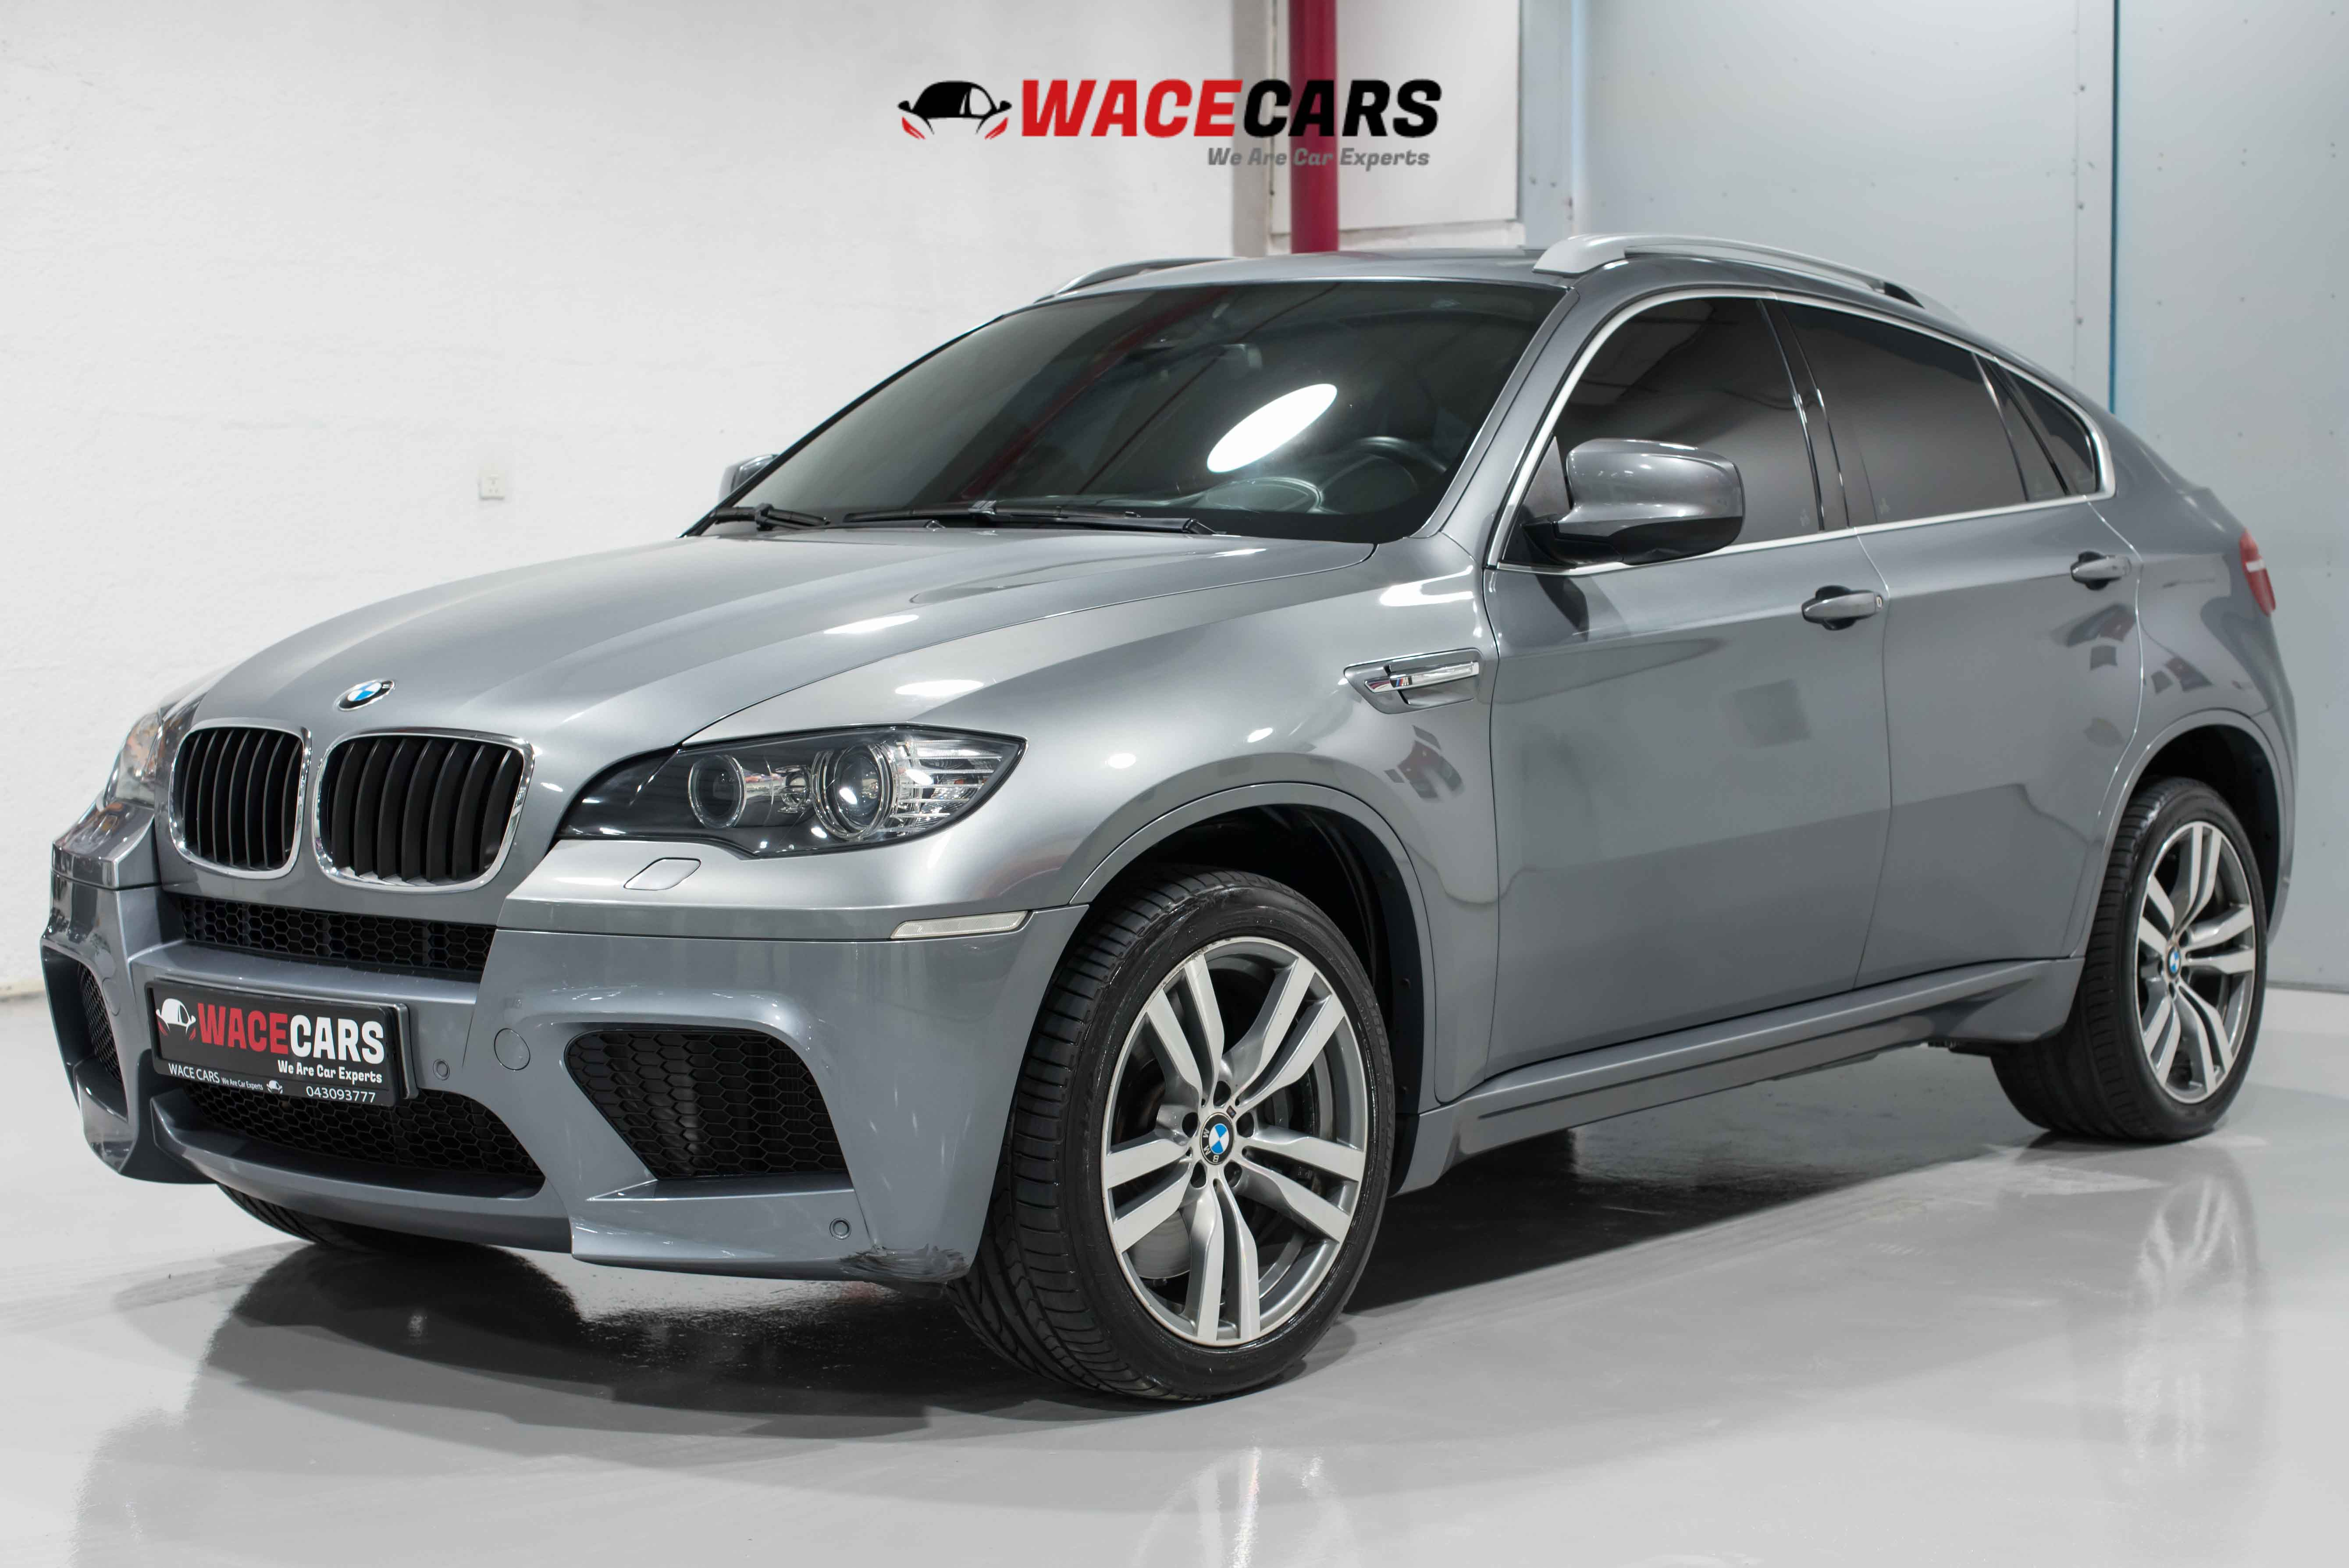 Used BMW X6 2011 For Sale In Dubai